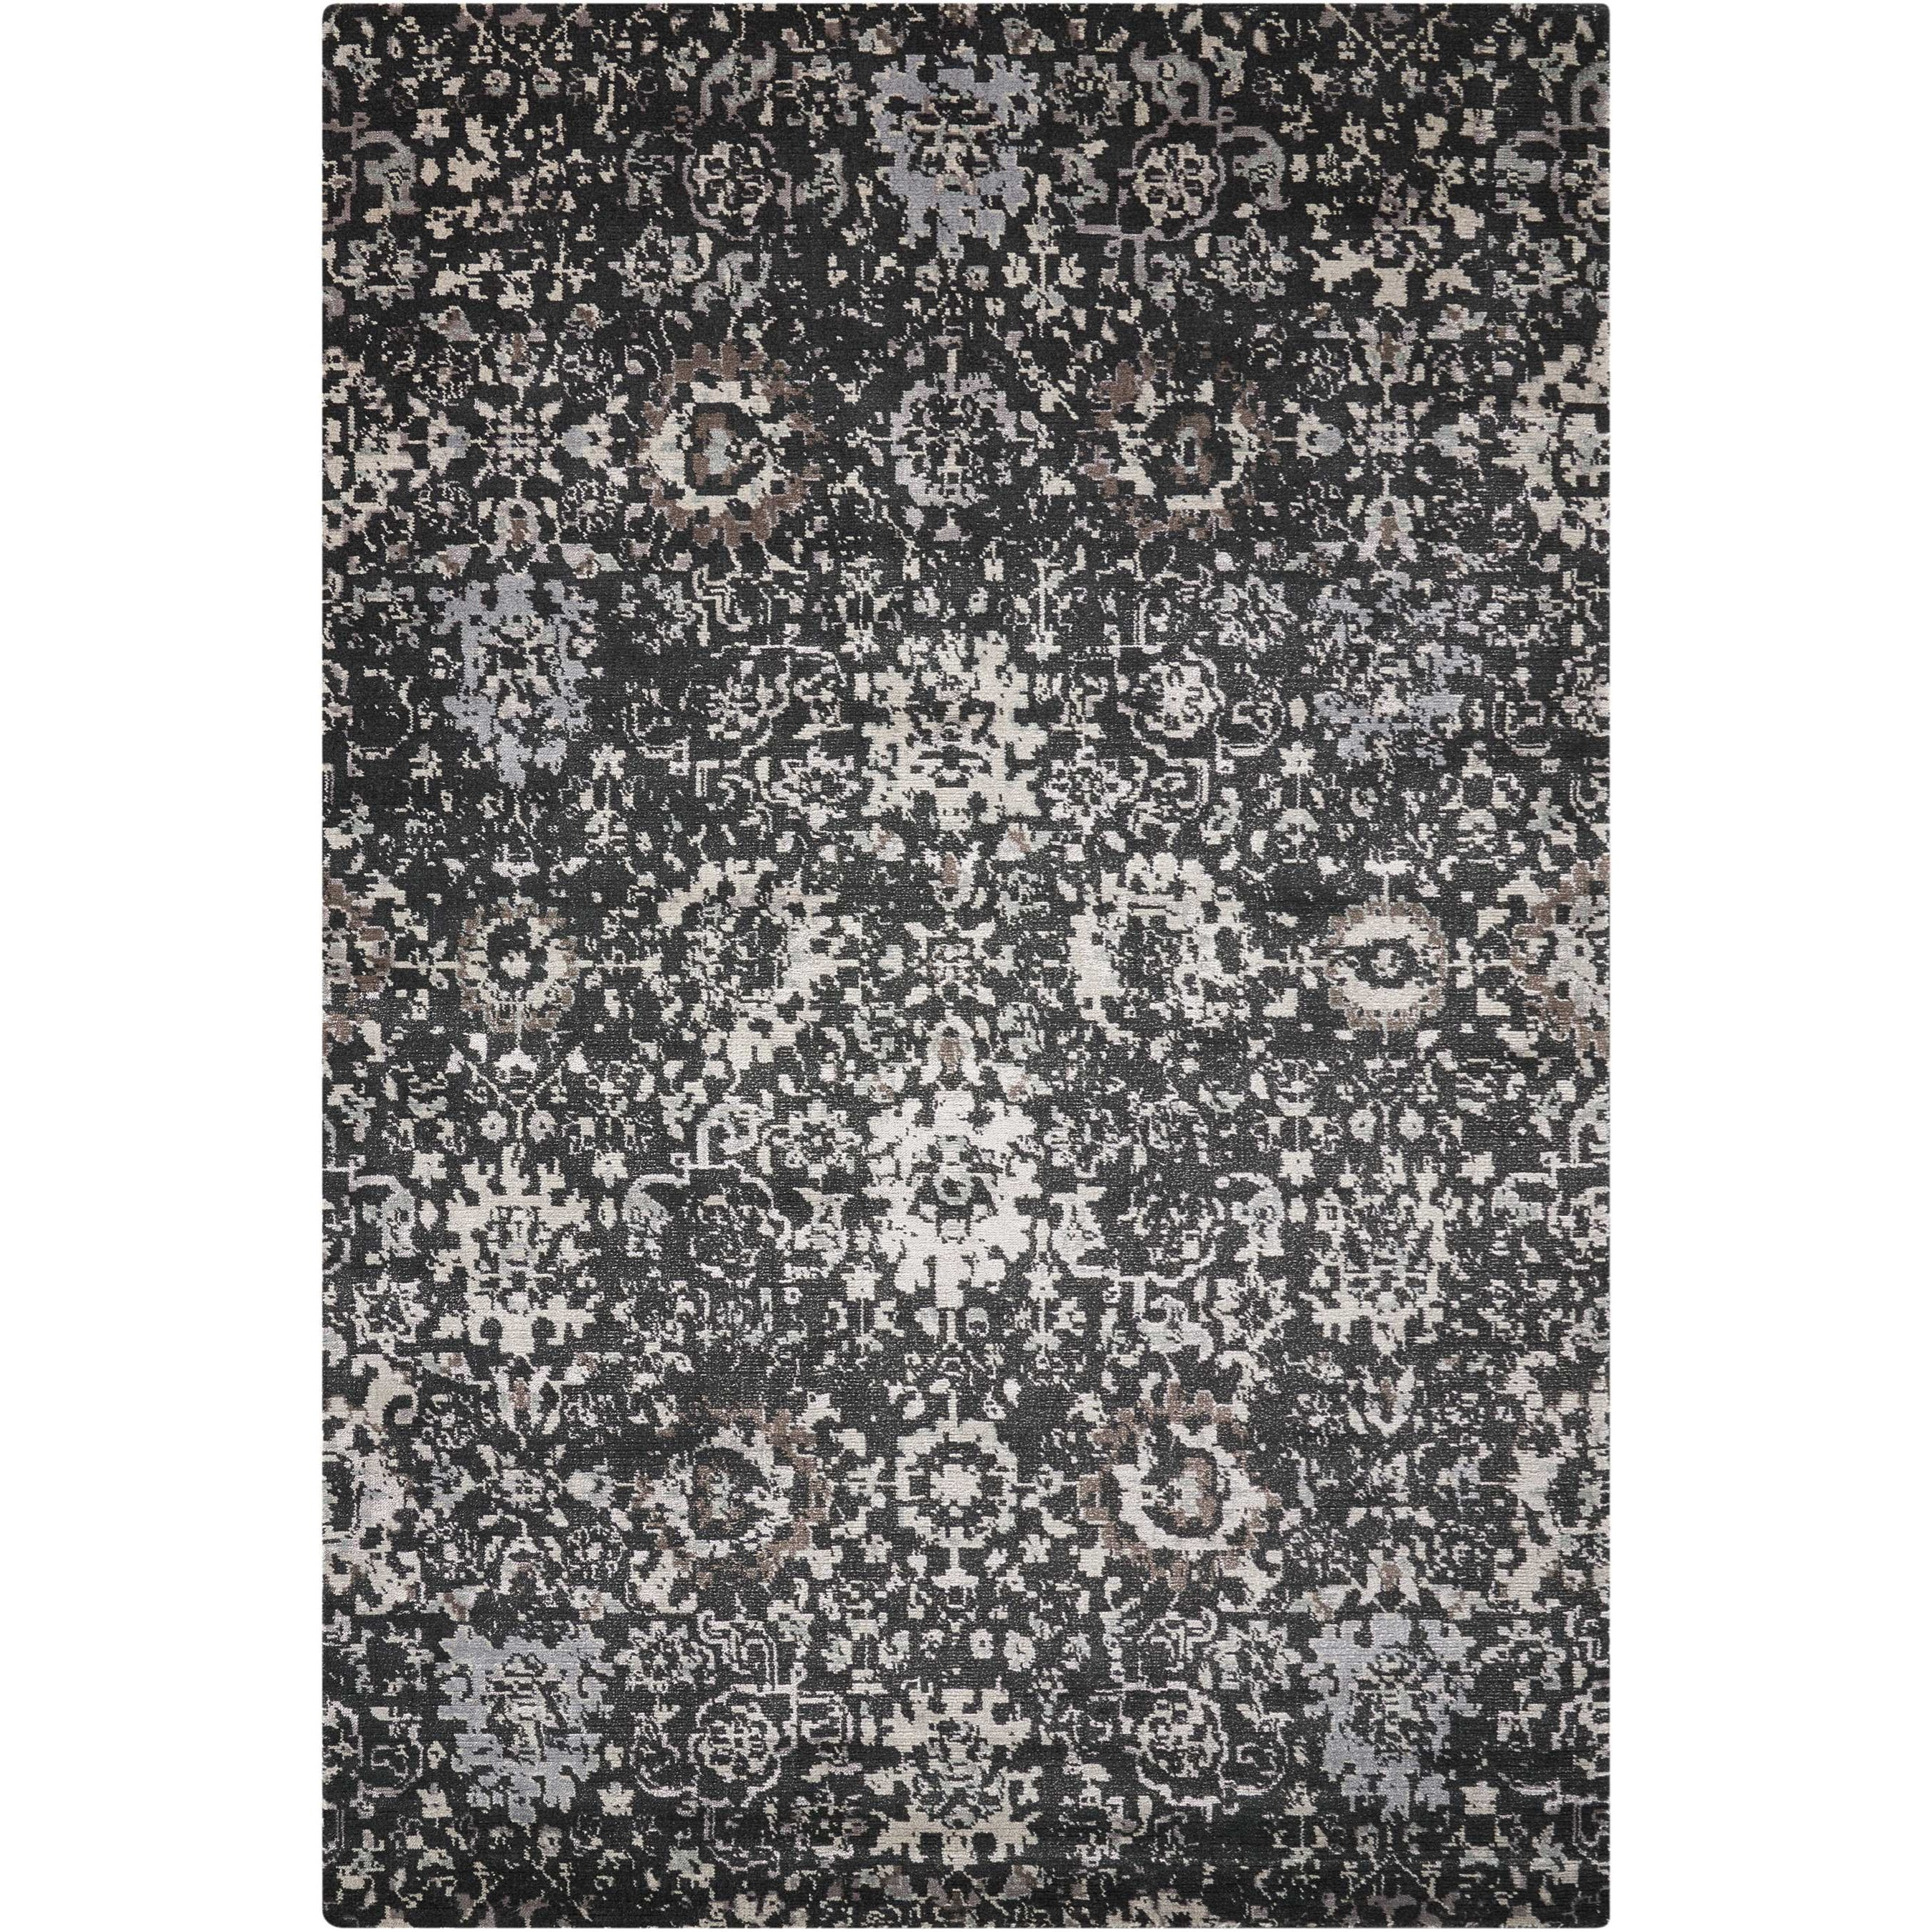 Twilight1 12' X 15' Onyx Rug by Nourison at Home Collections Furniture